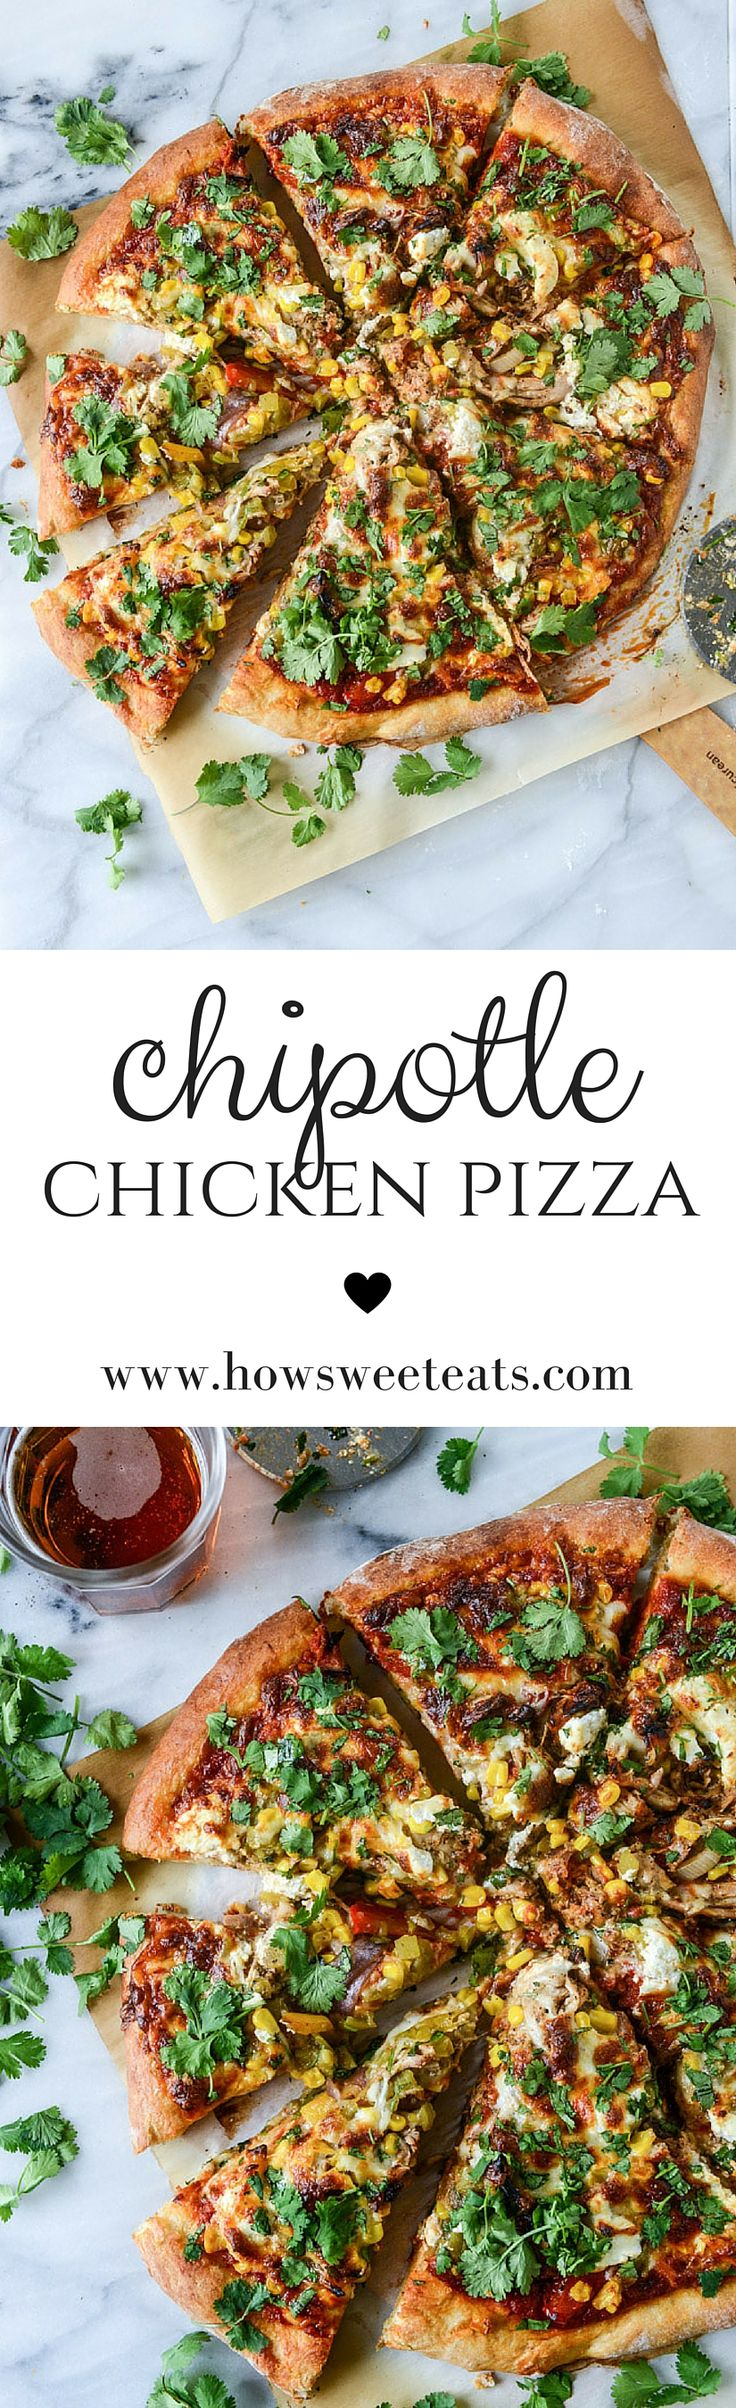 chipotle chicken pizza with goat cheese I howsweeteats.com